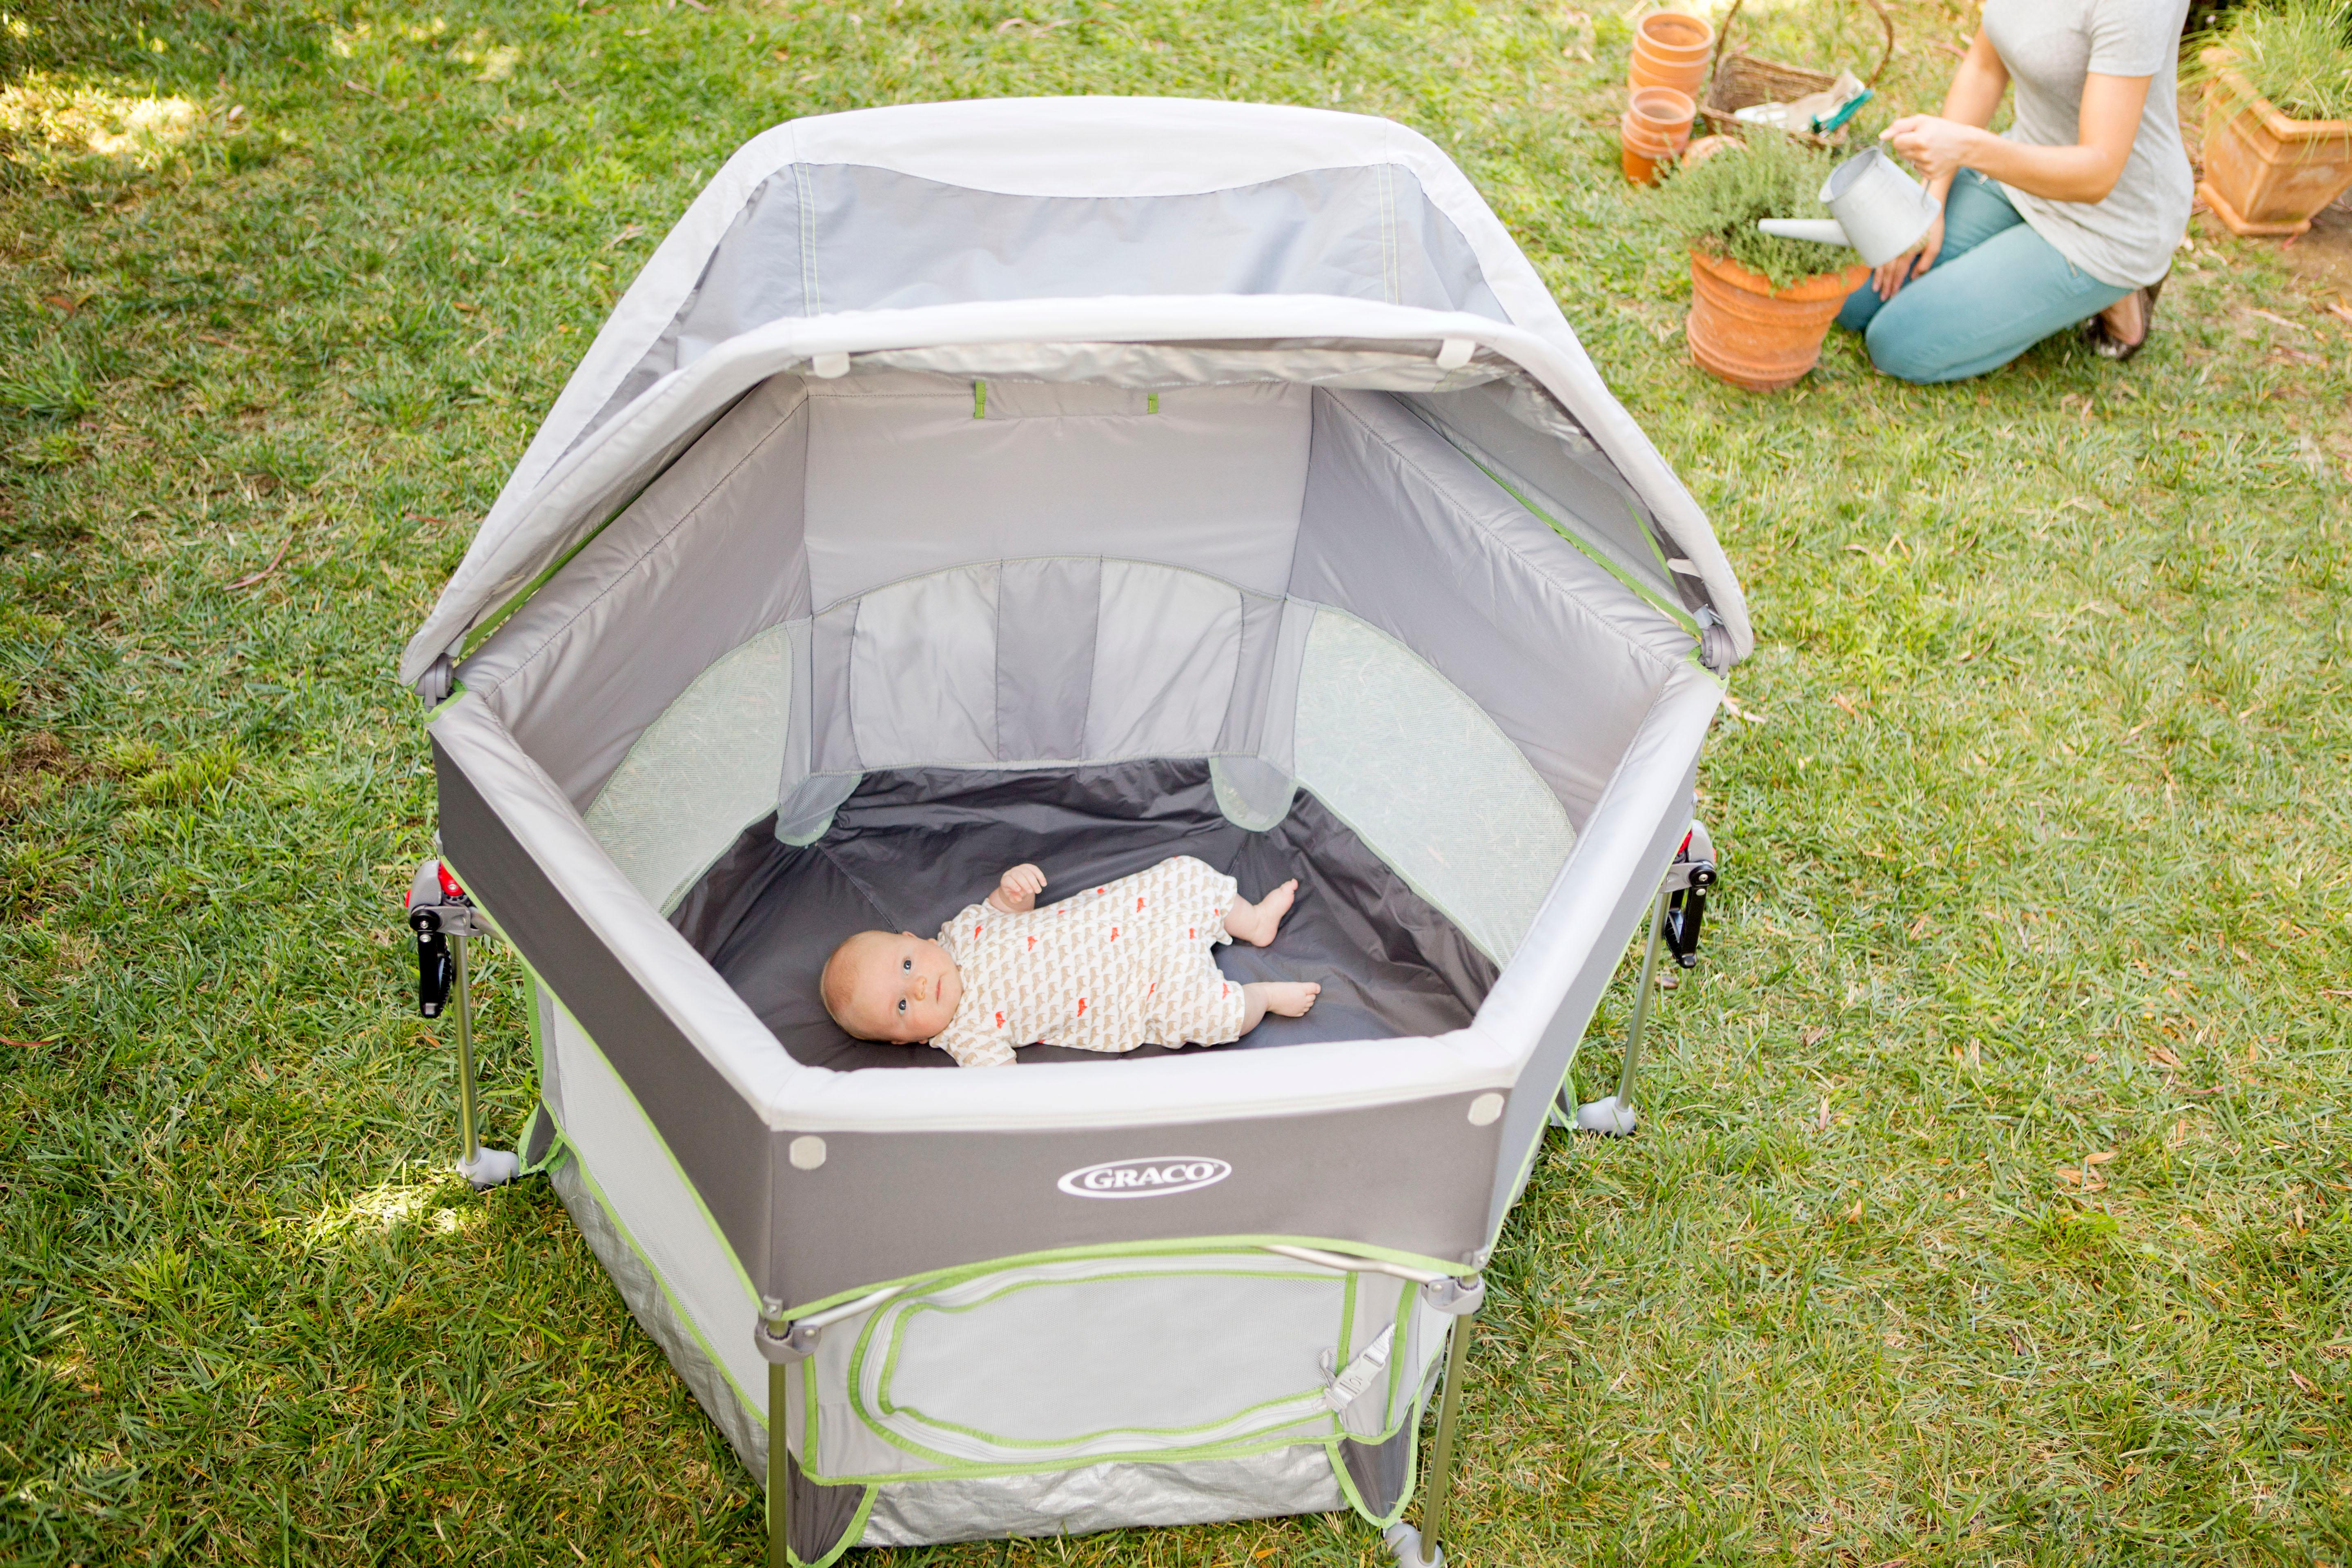 Playpens & Play Yards Baby Search For Flights Graco Sport Travel Playyard Pack And Play W Canopy High Safety